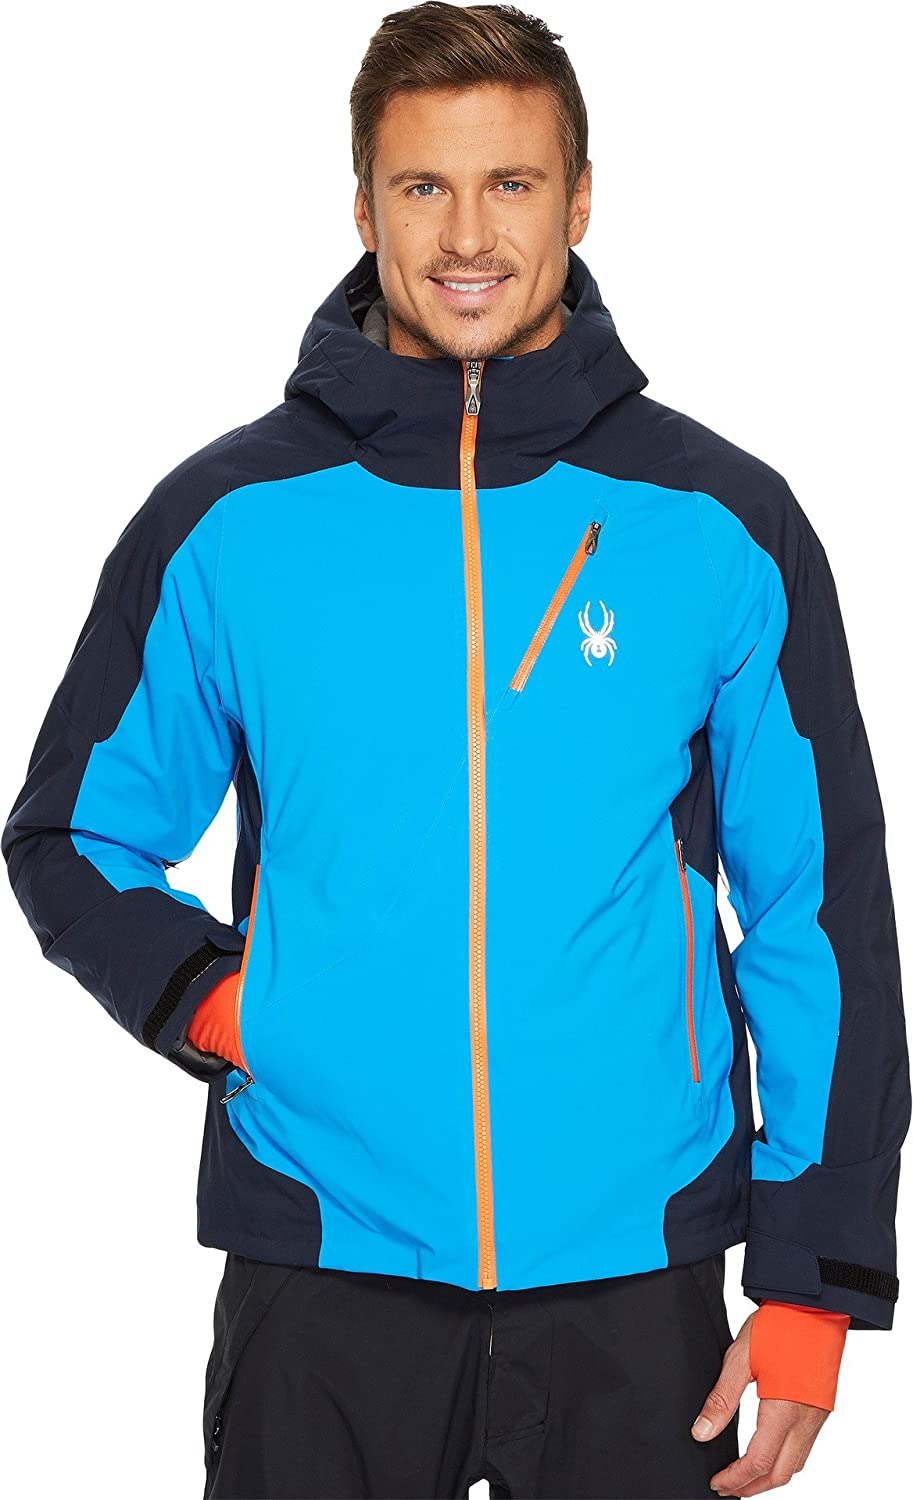 Spyder Men's Laax Jacket French Blue/Frontier/Frontier Small